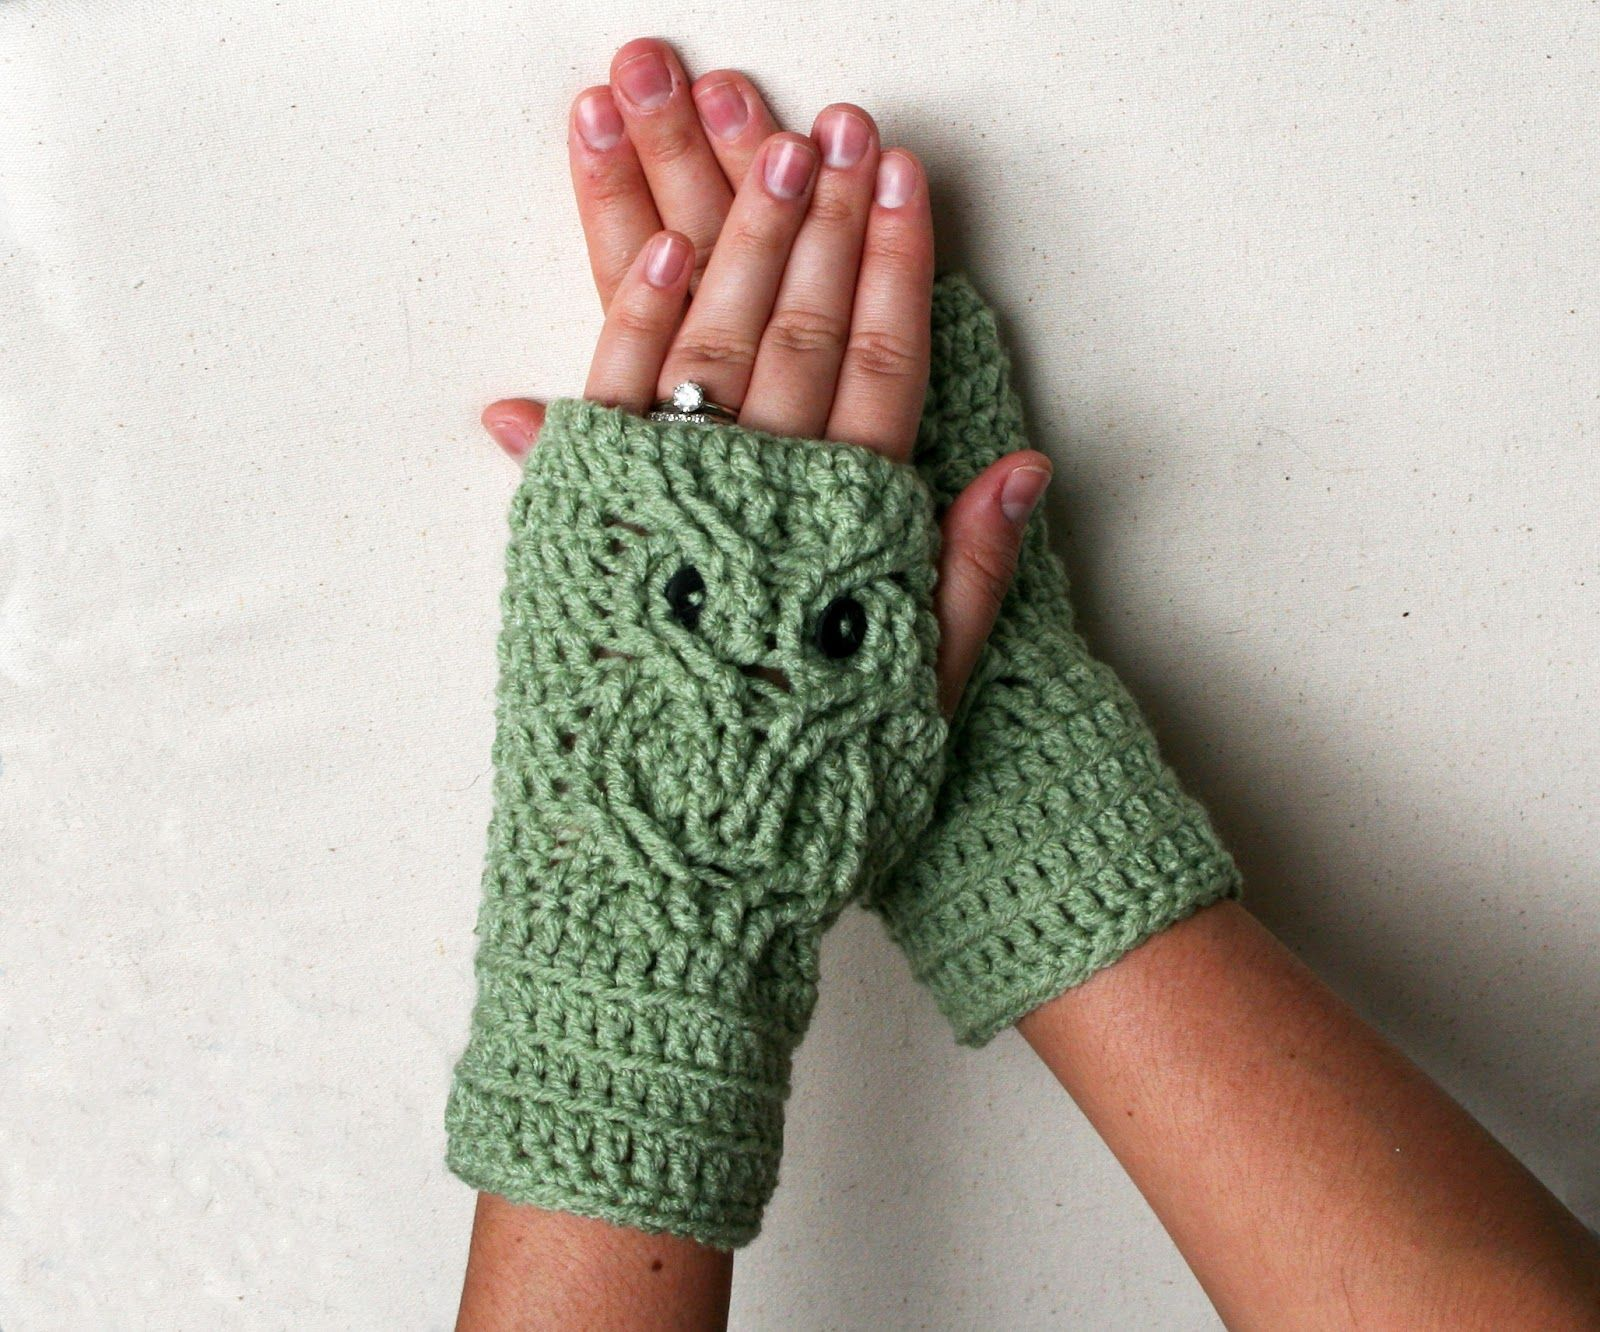 Craft Project: Lacy Mittens